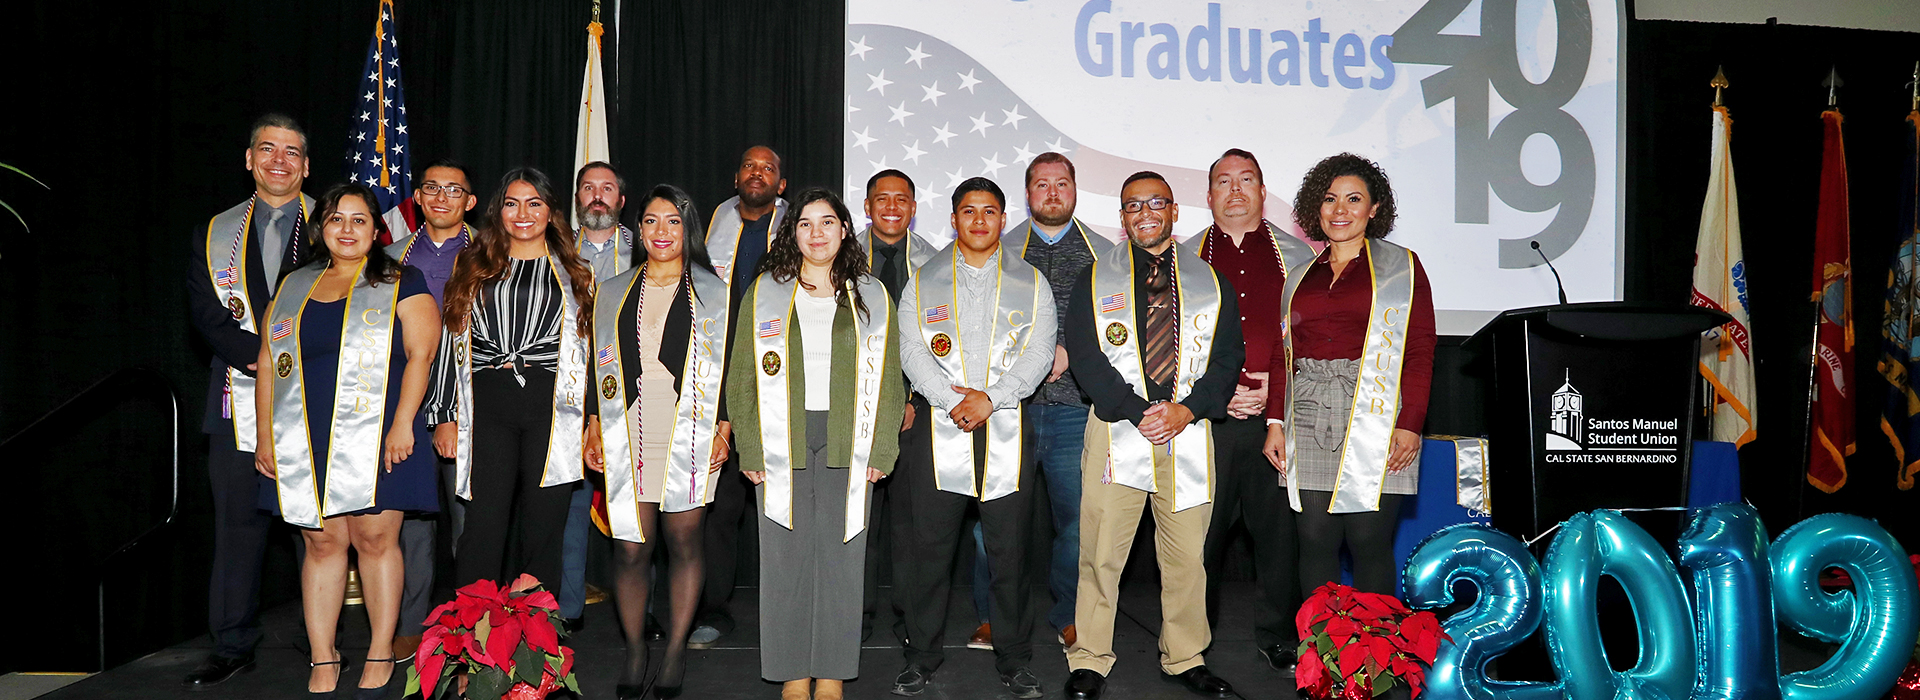 Student veterans receive special stoles for Commencement